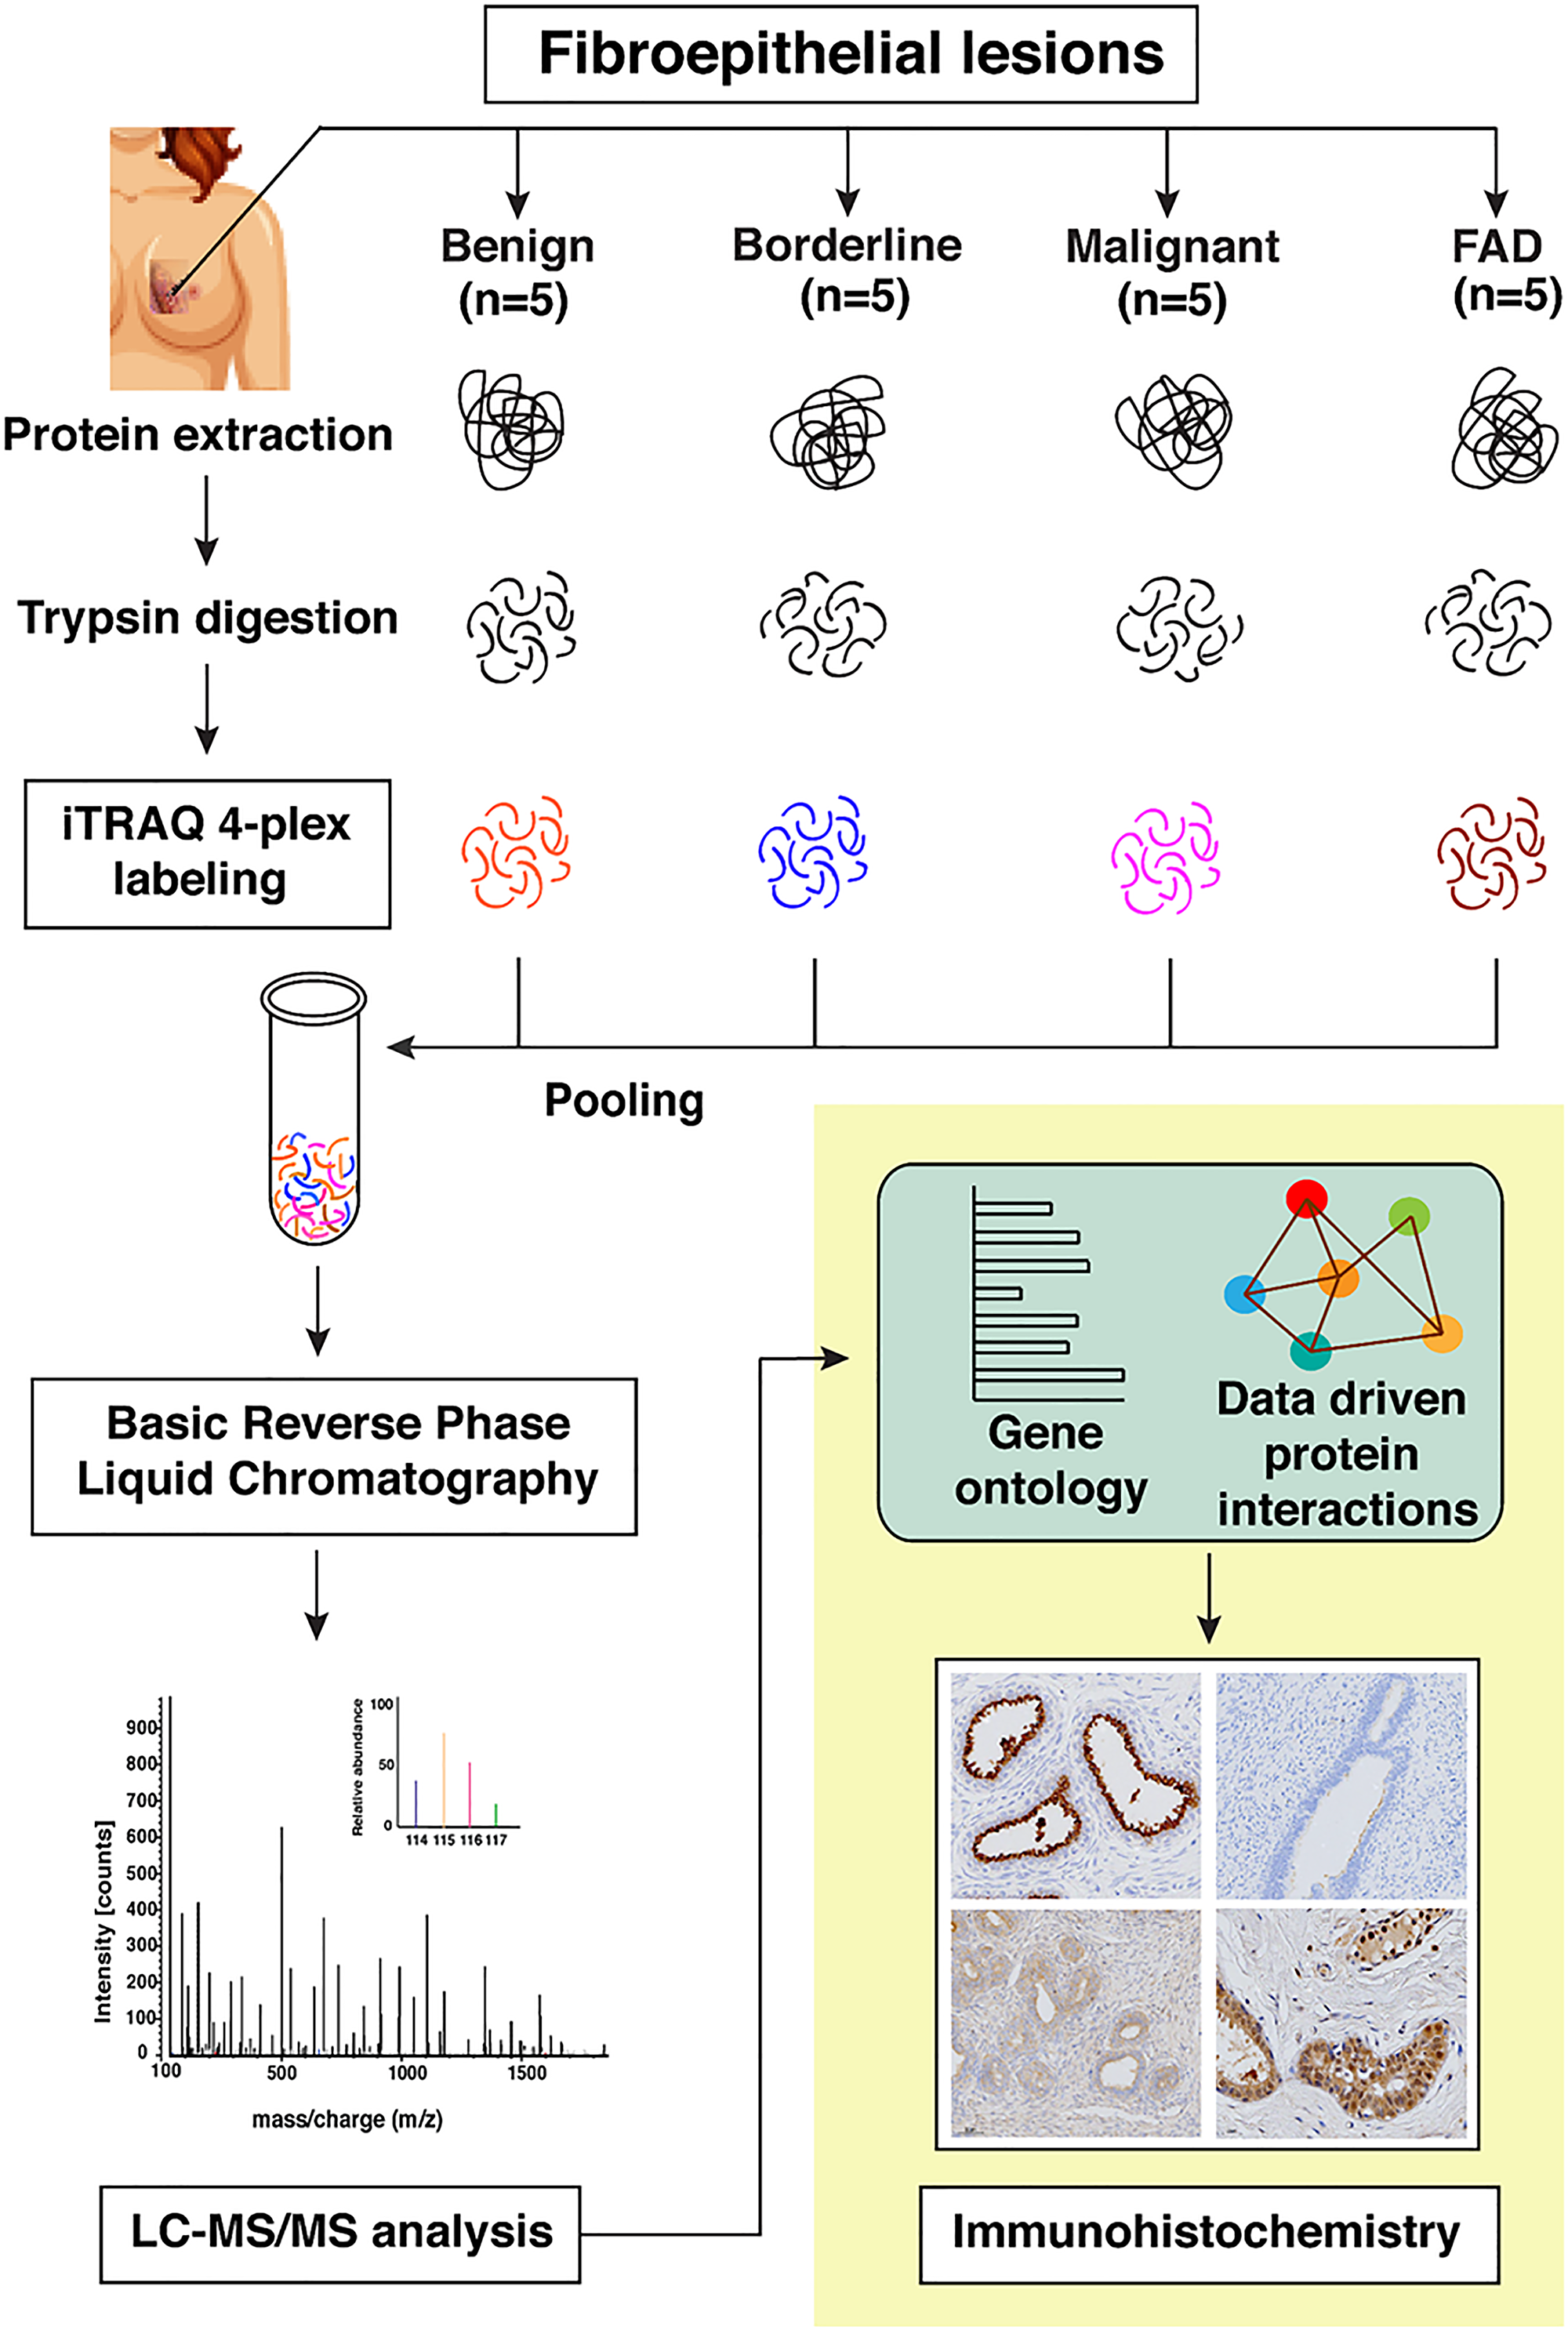 Schematic workflow for the identification of differentially expressed proteins across FELs using iTRAQ based quantitative proteomics approach.